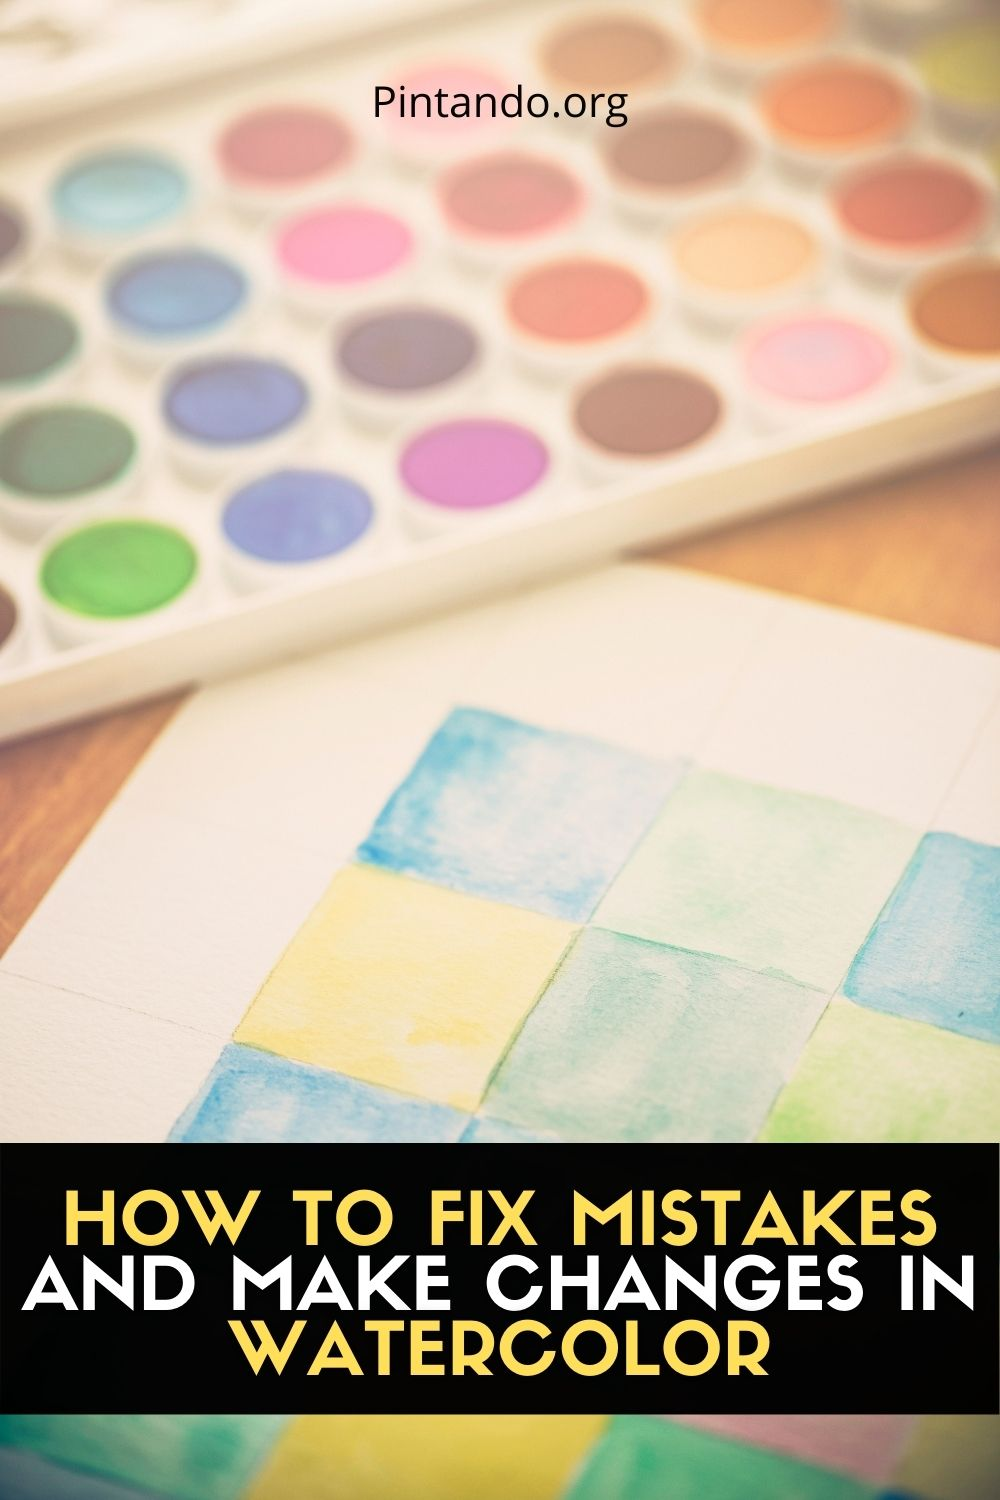 HOW TO FIX MISTAKES AND MAKE CHANGES IN WATERCOLOR (1)